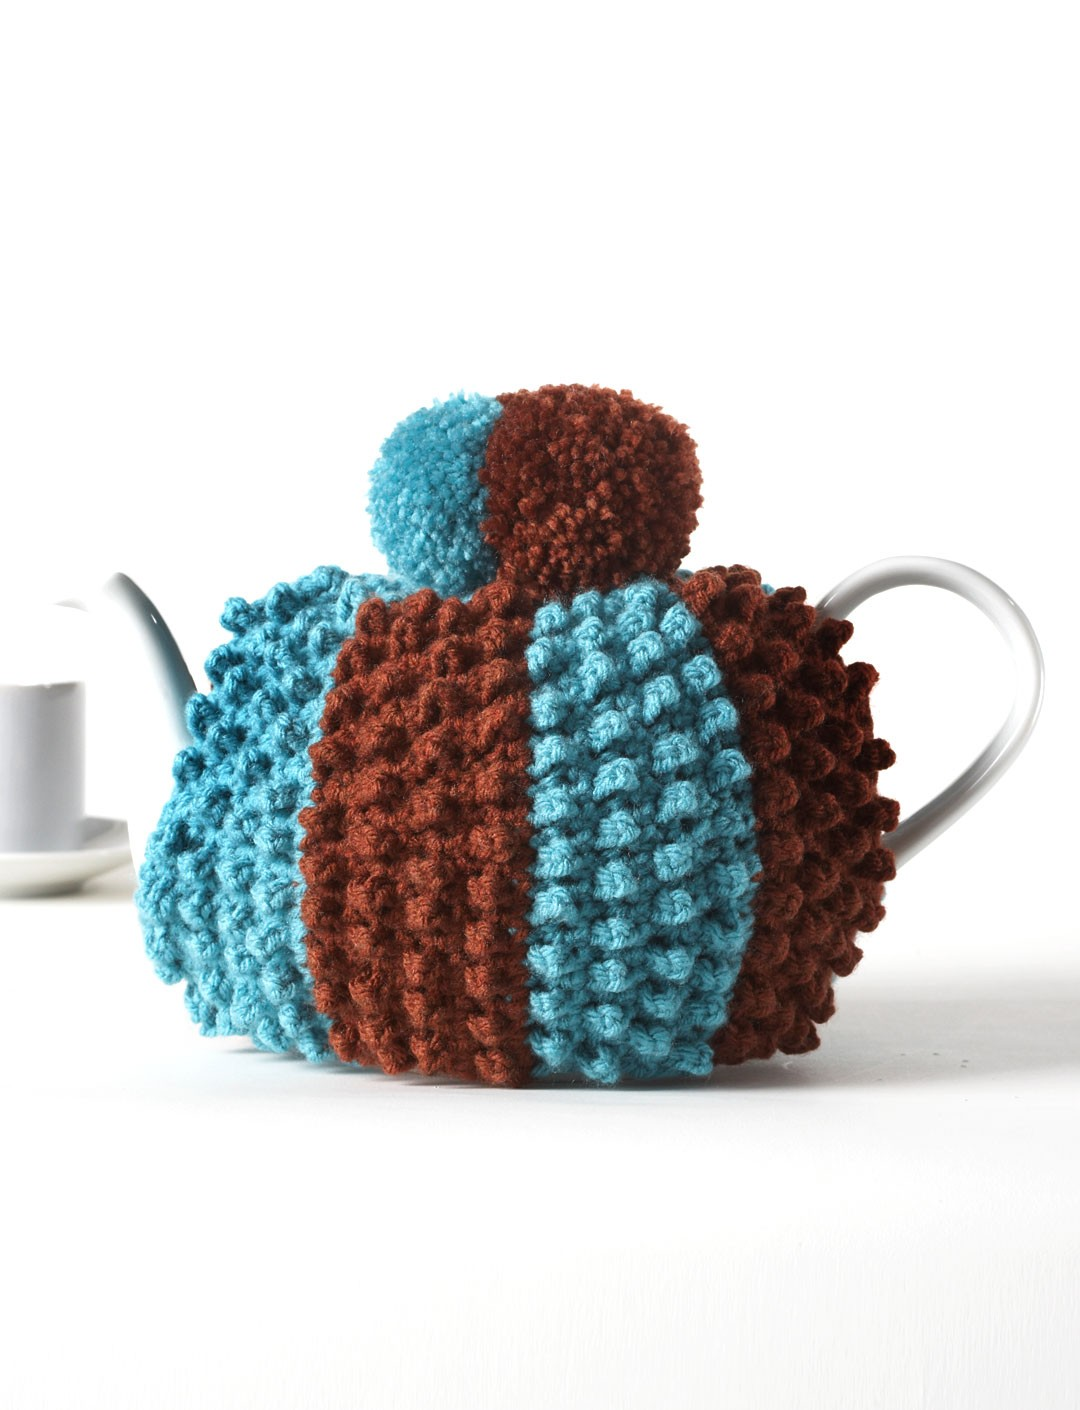 Crochet Popcorn Tea Cozy